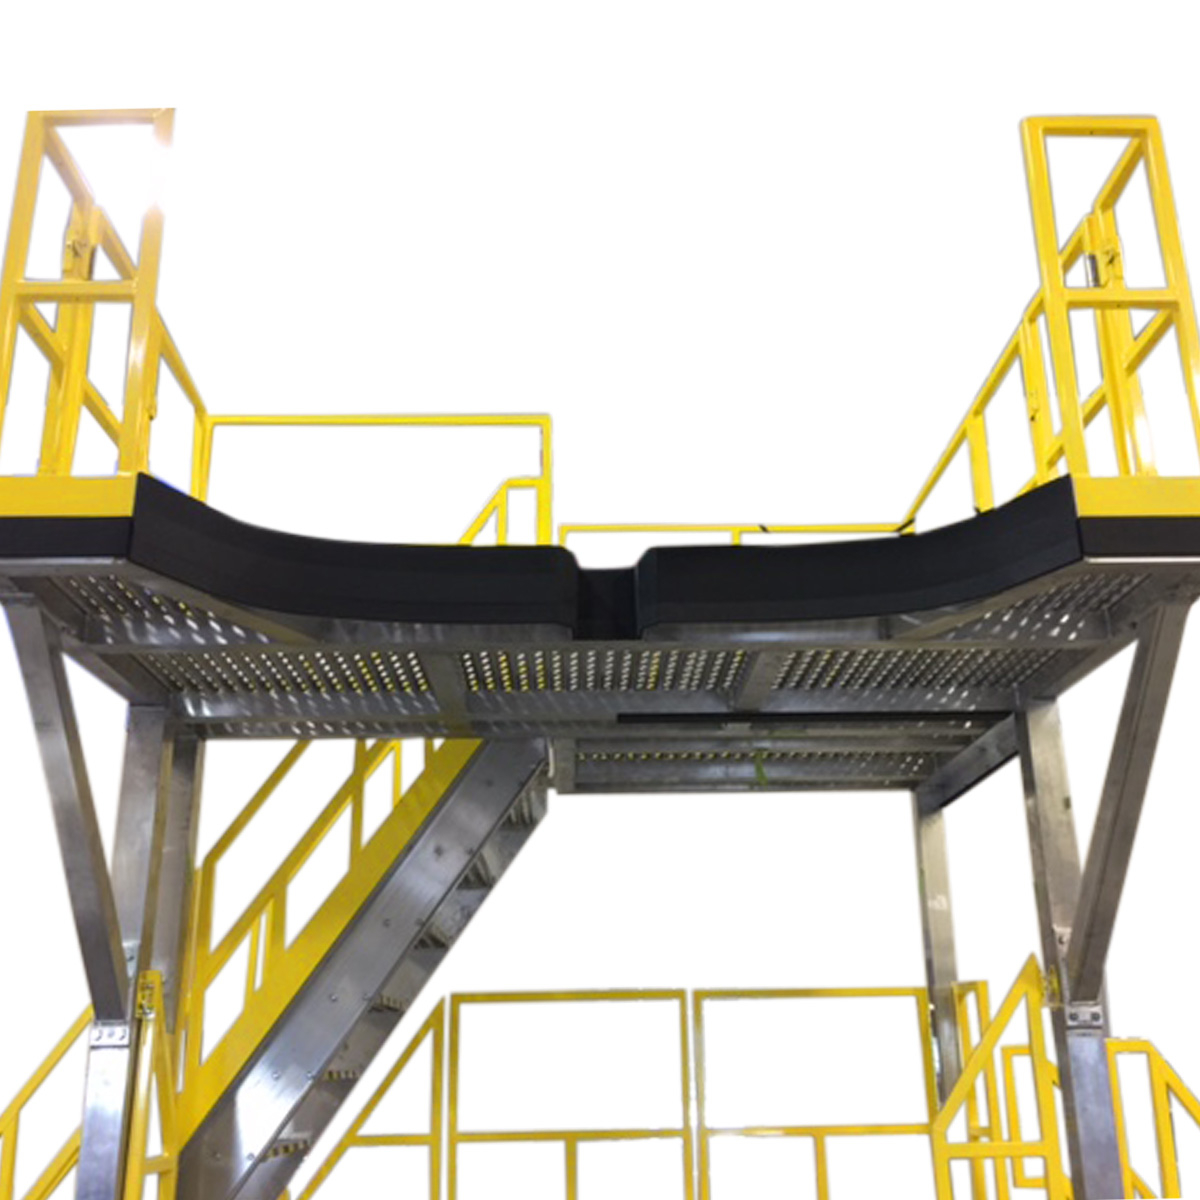 OSHA compliant aluminum mobile work platform with stair and dual customized deck shape, deck extensions for overreach and toe board for 100% fall prevention.